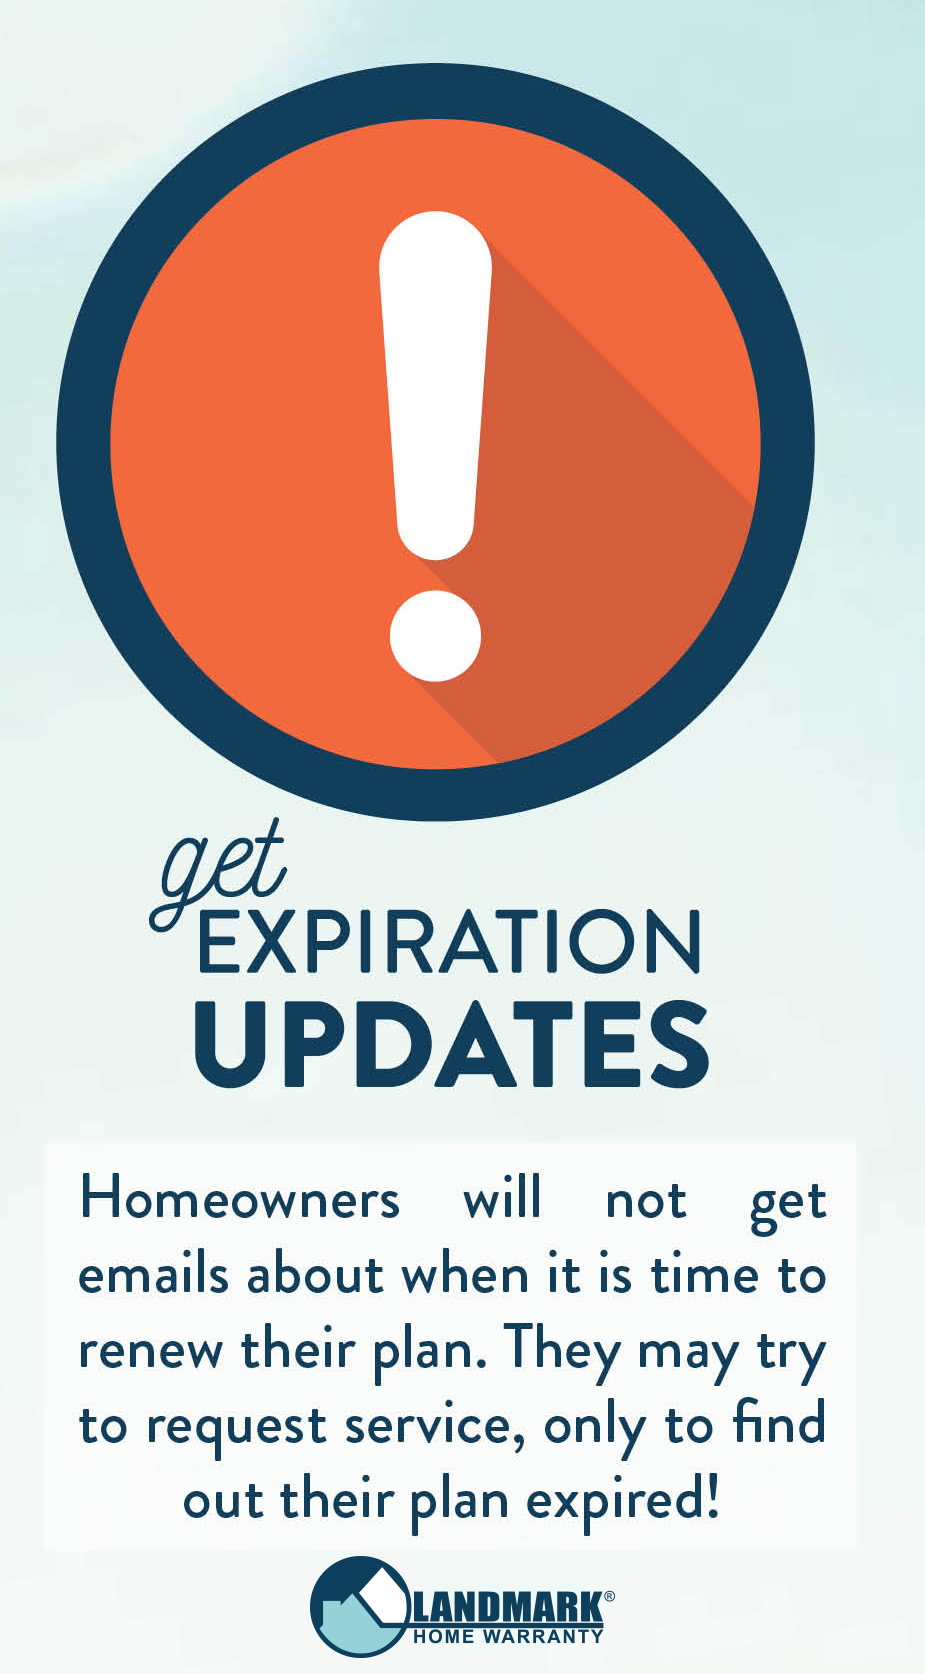 Without an email, homeowners cannot get updates on their renewal and expiration date for their home warranty plan.